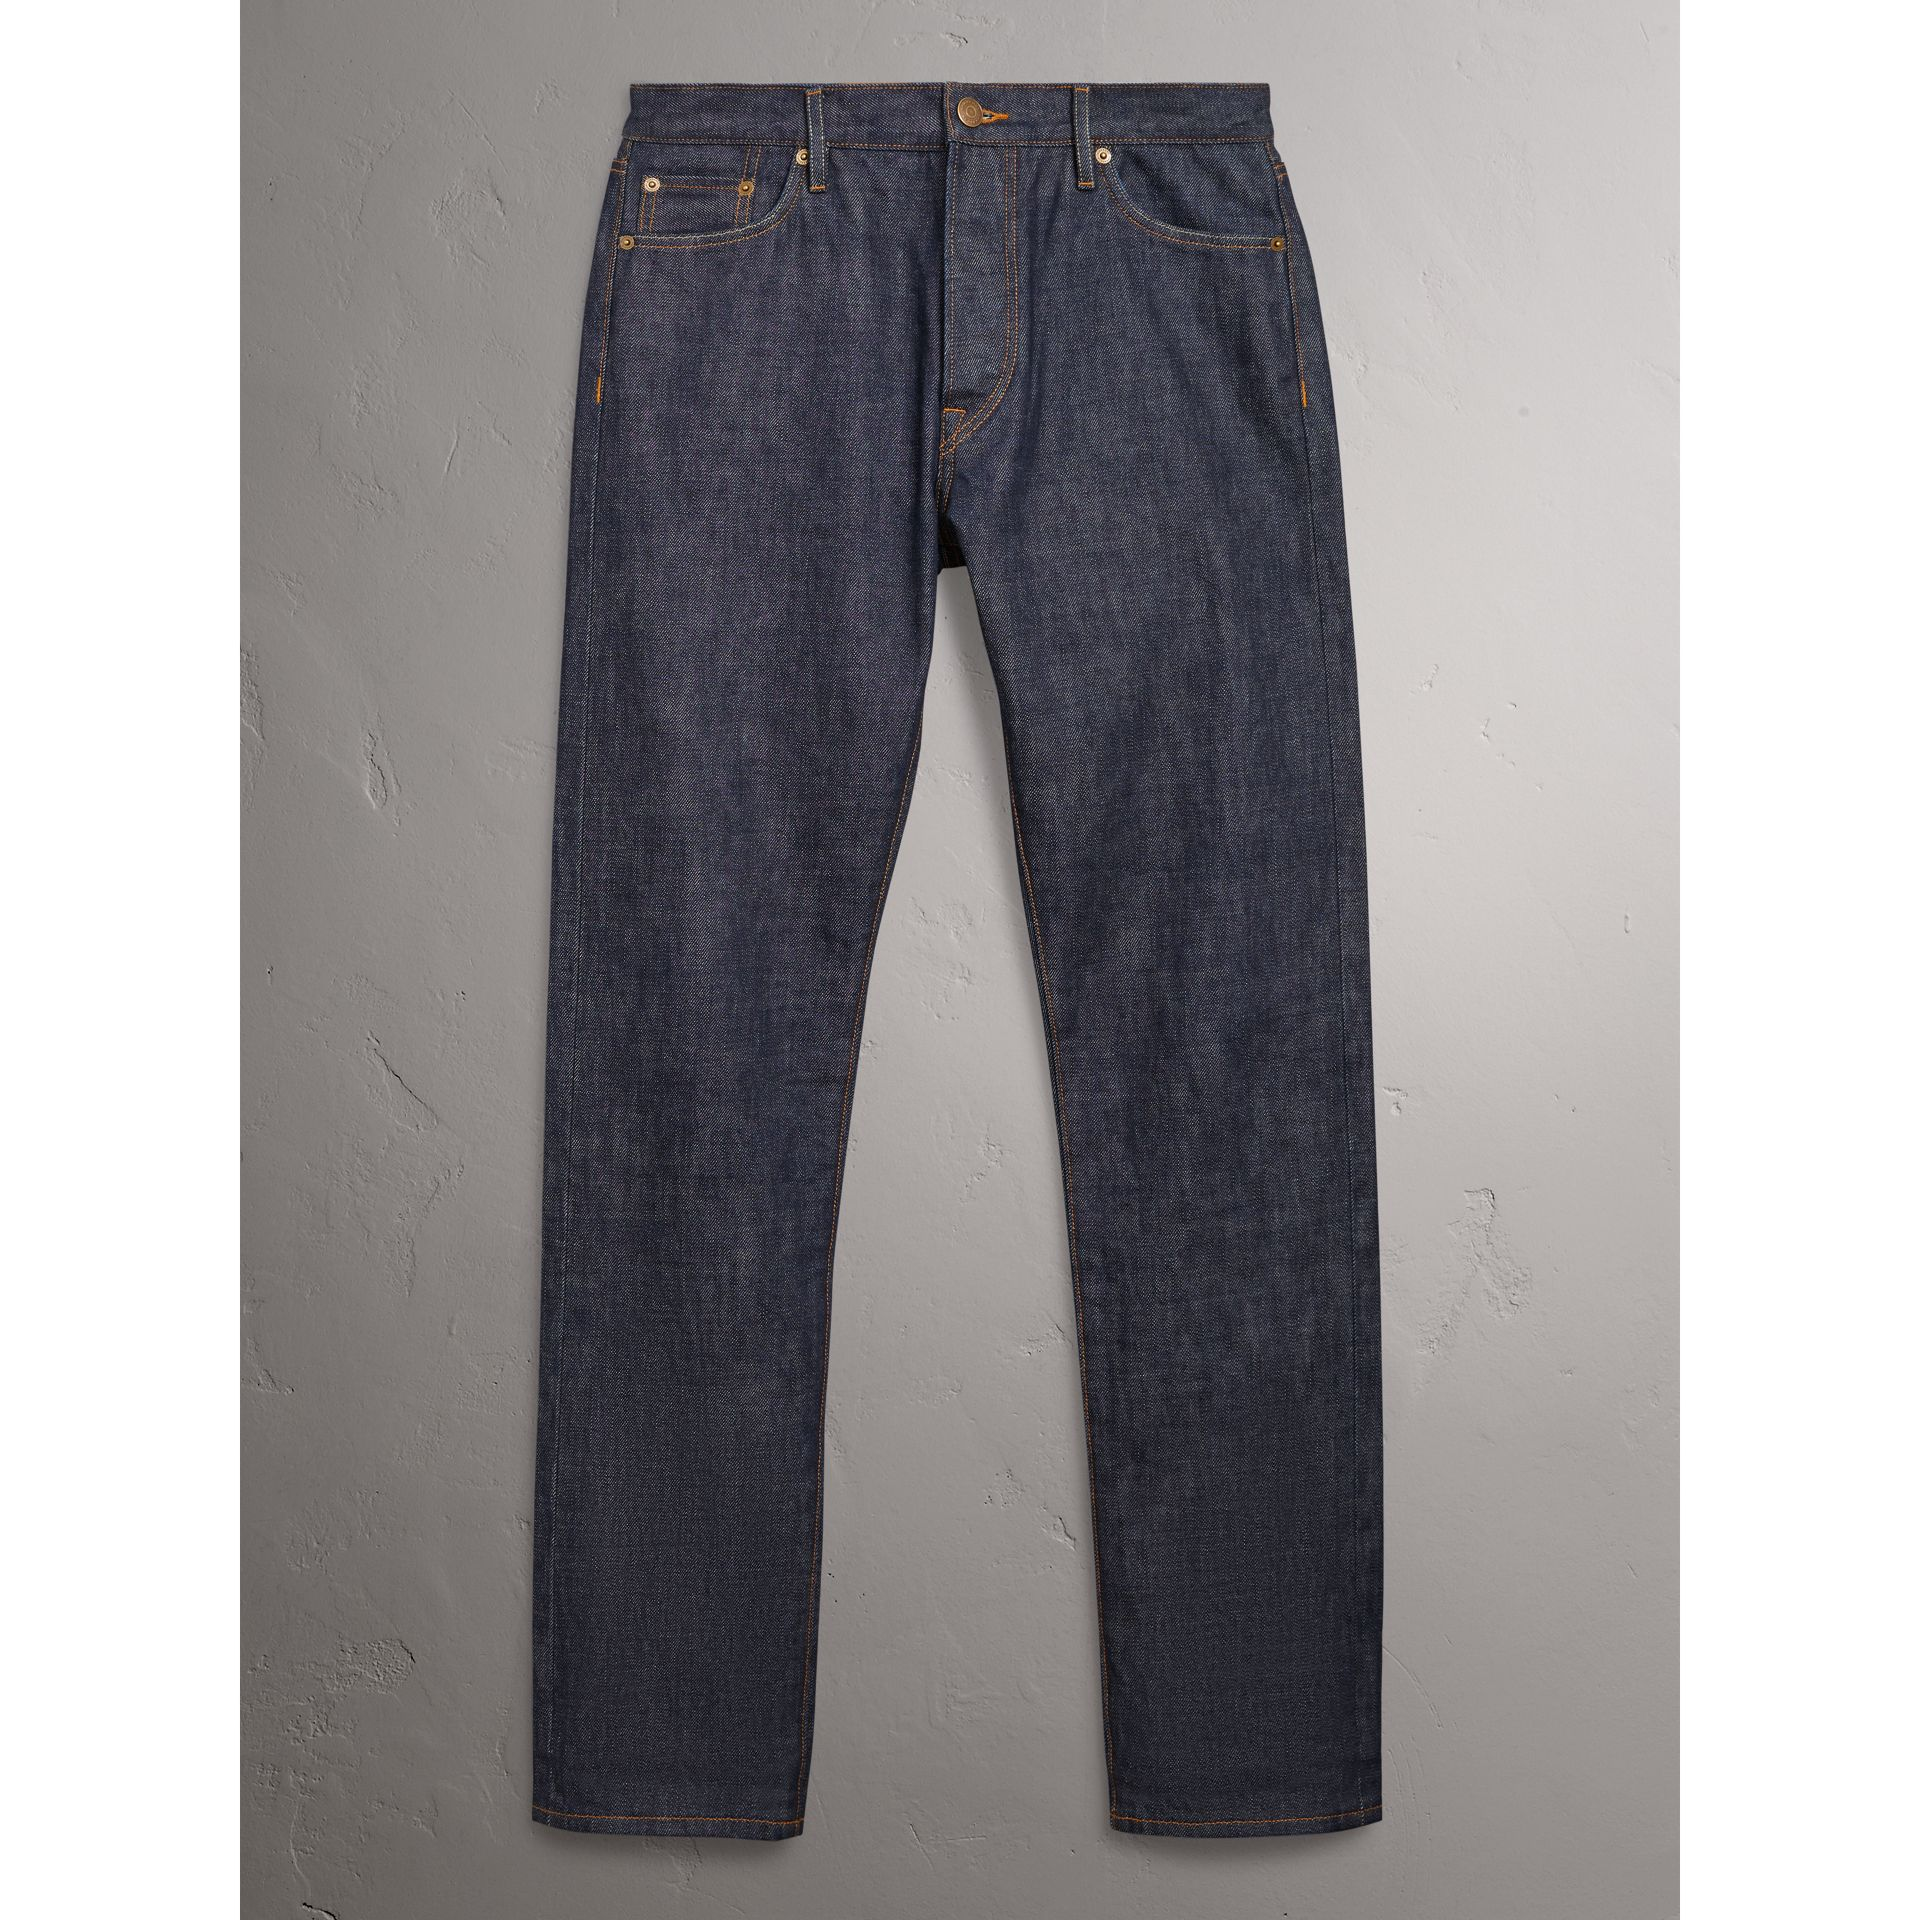 Burberry Mid Indigo Blue Relaxed Fit Japanese Selvedge Denim Jeans